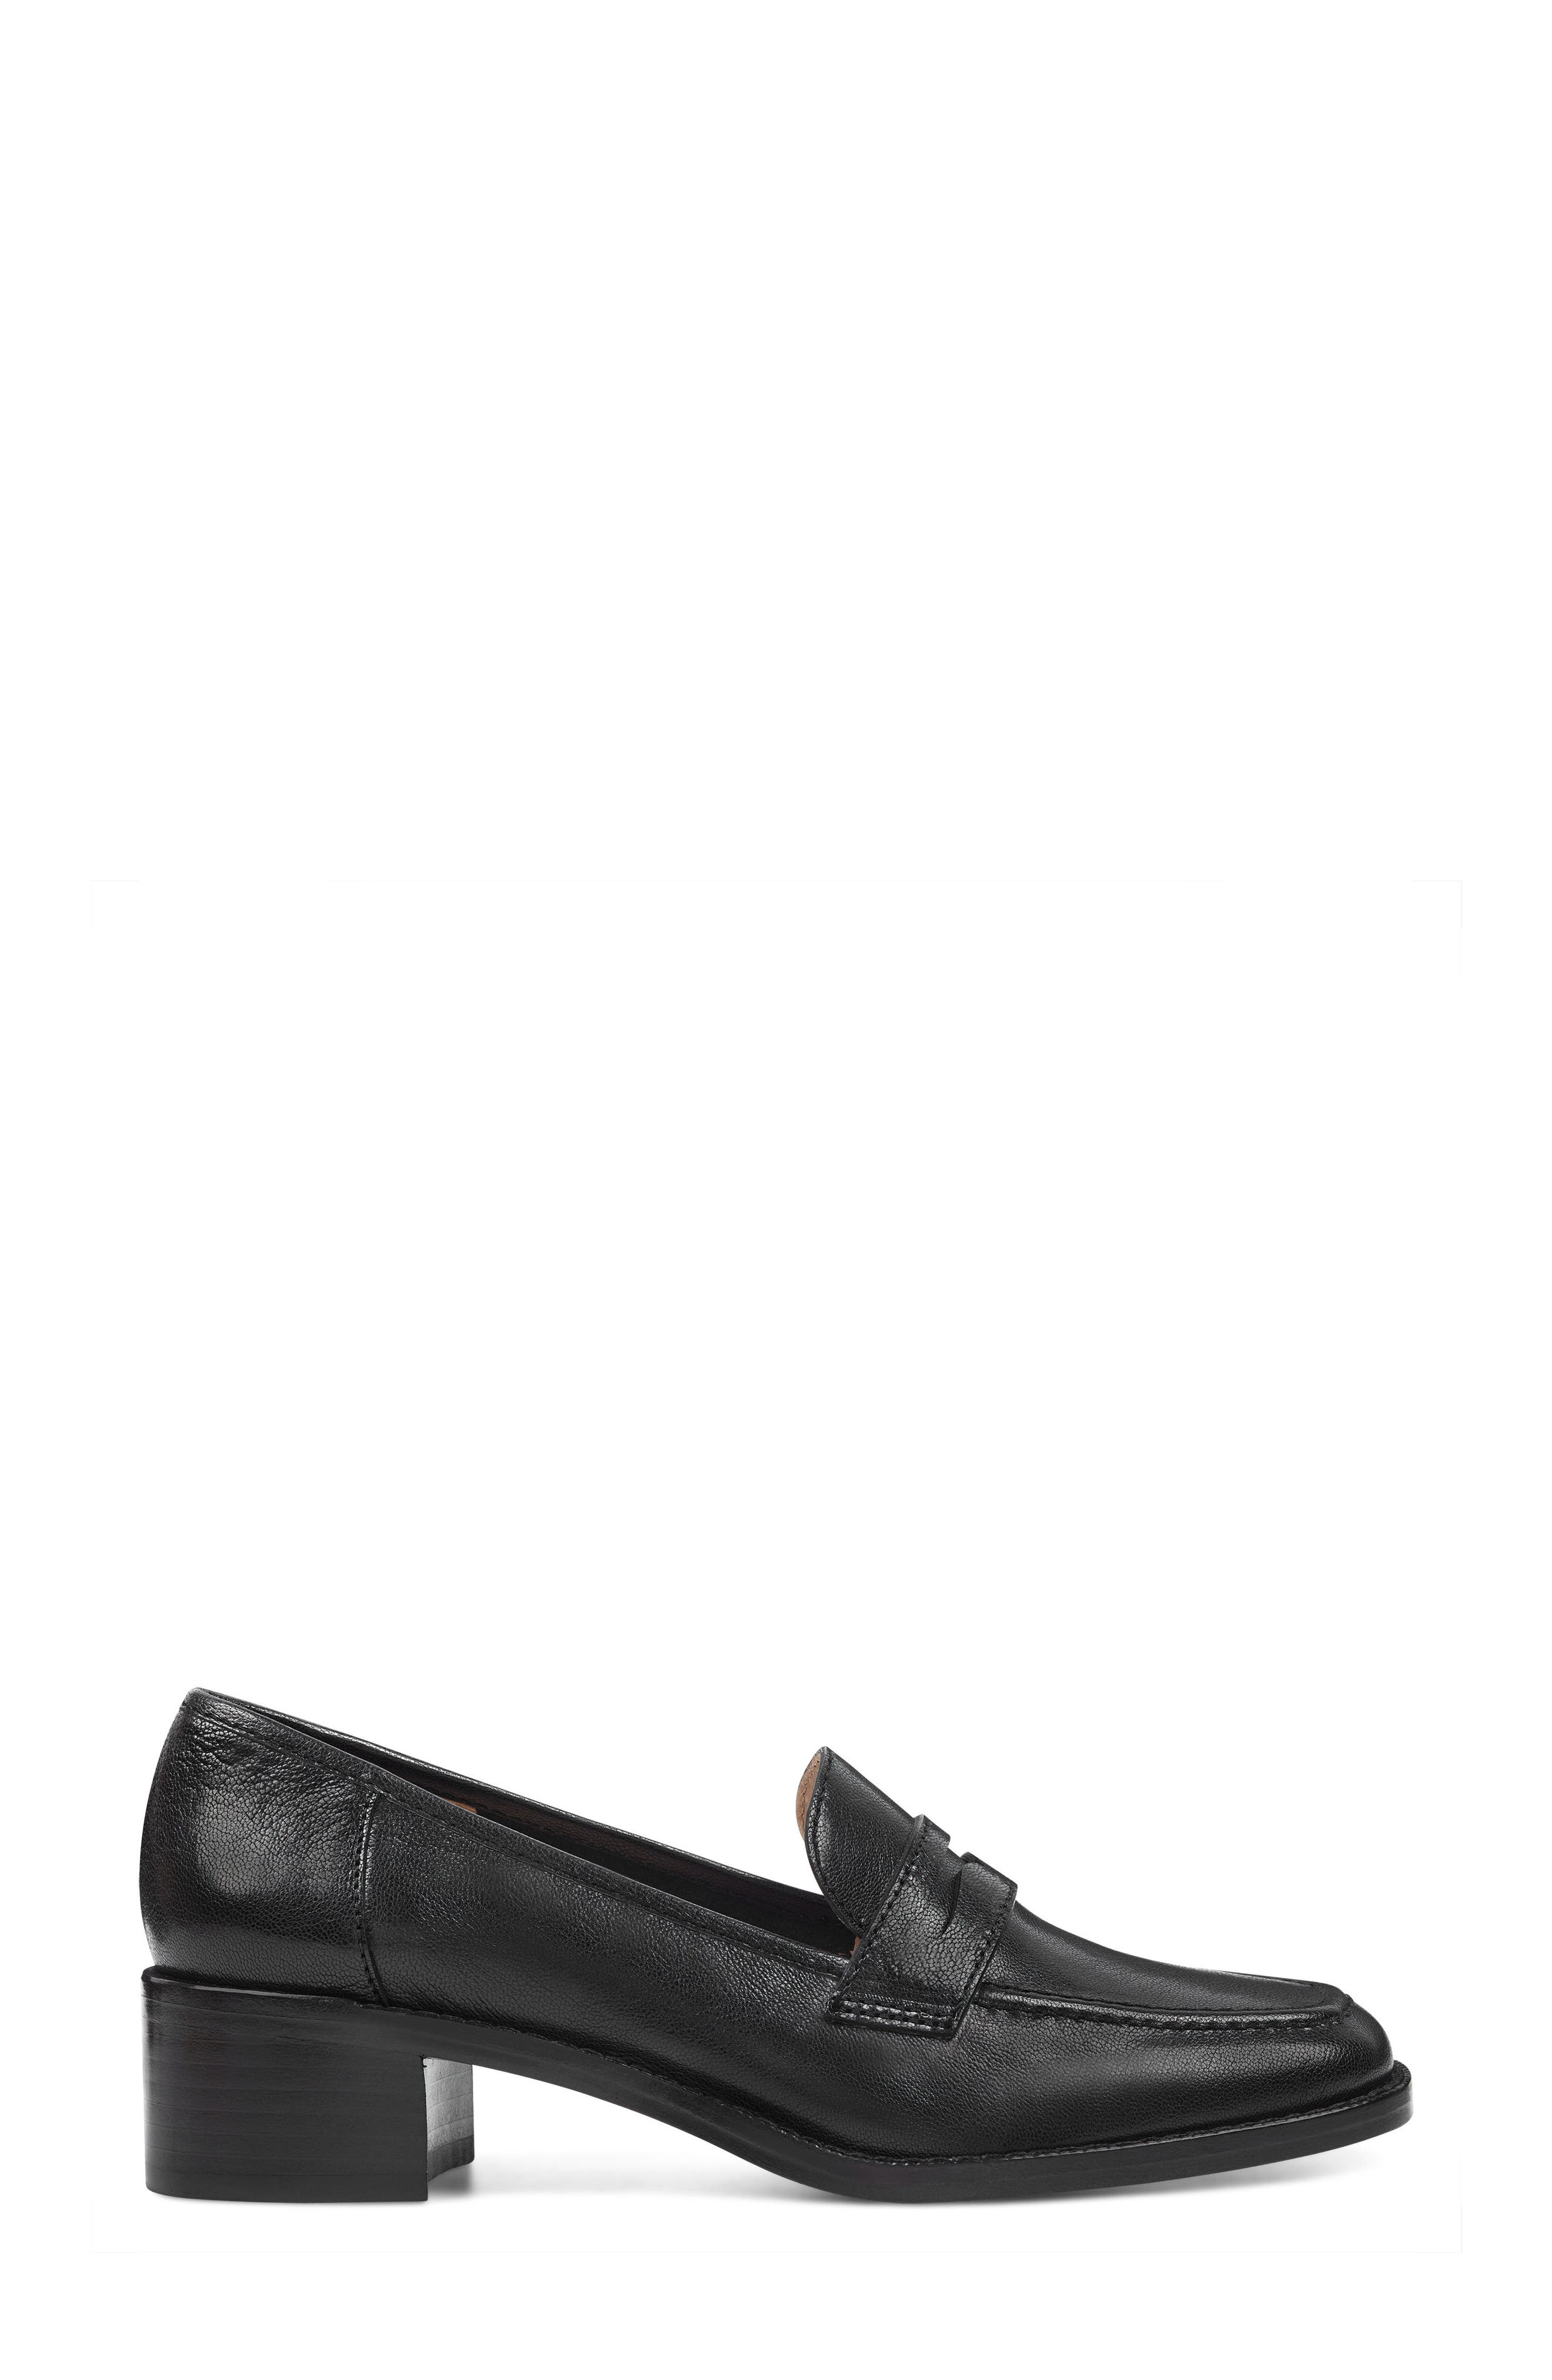 Kimmy - 40th Anniversary Capsule Collection Penny Loafer,                             Alternate thumbnail 3, color,                             001